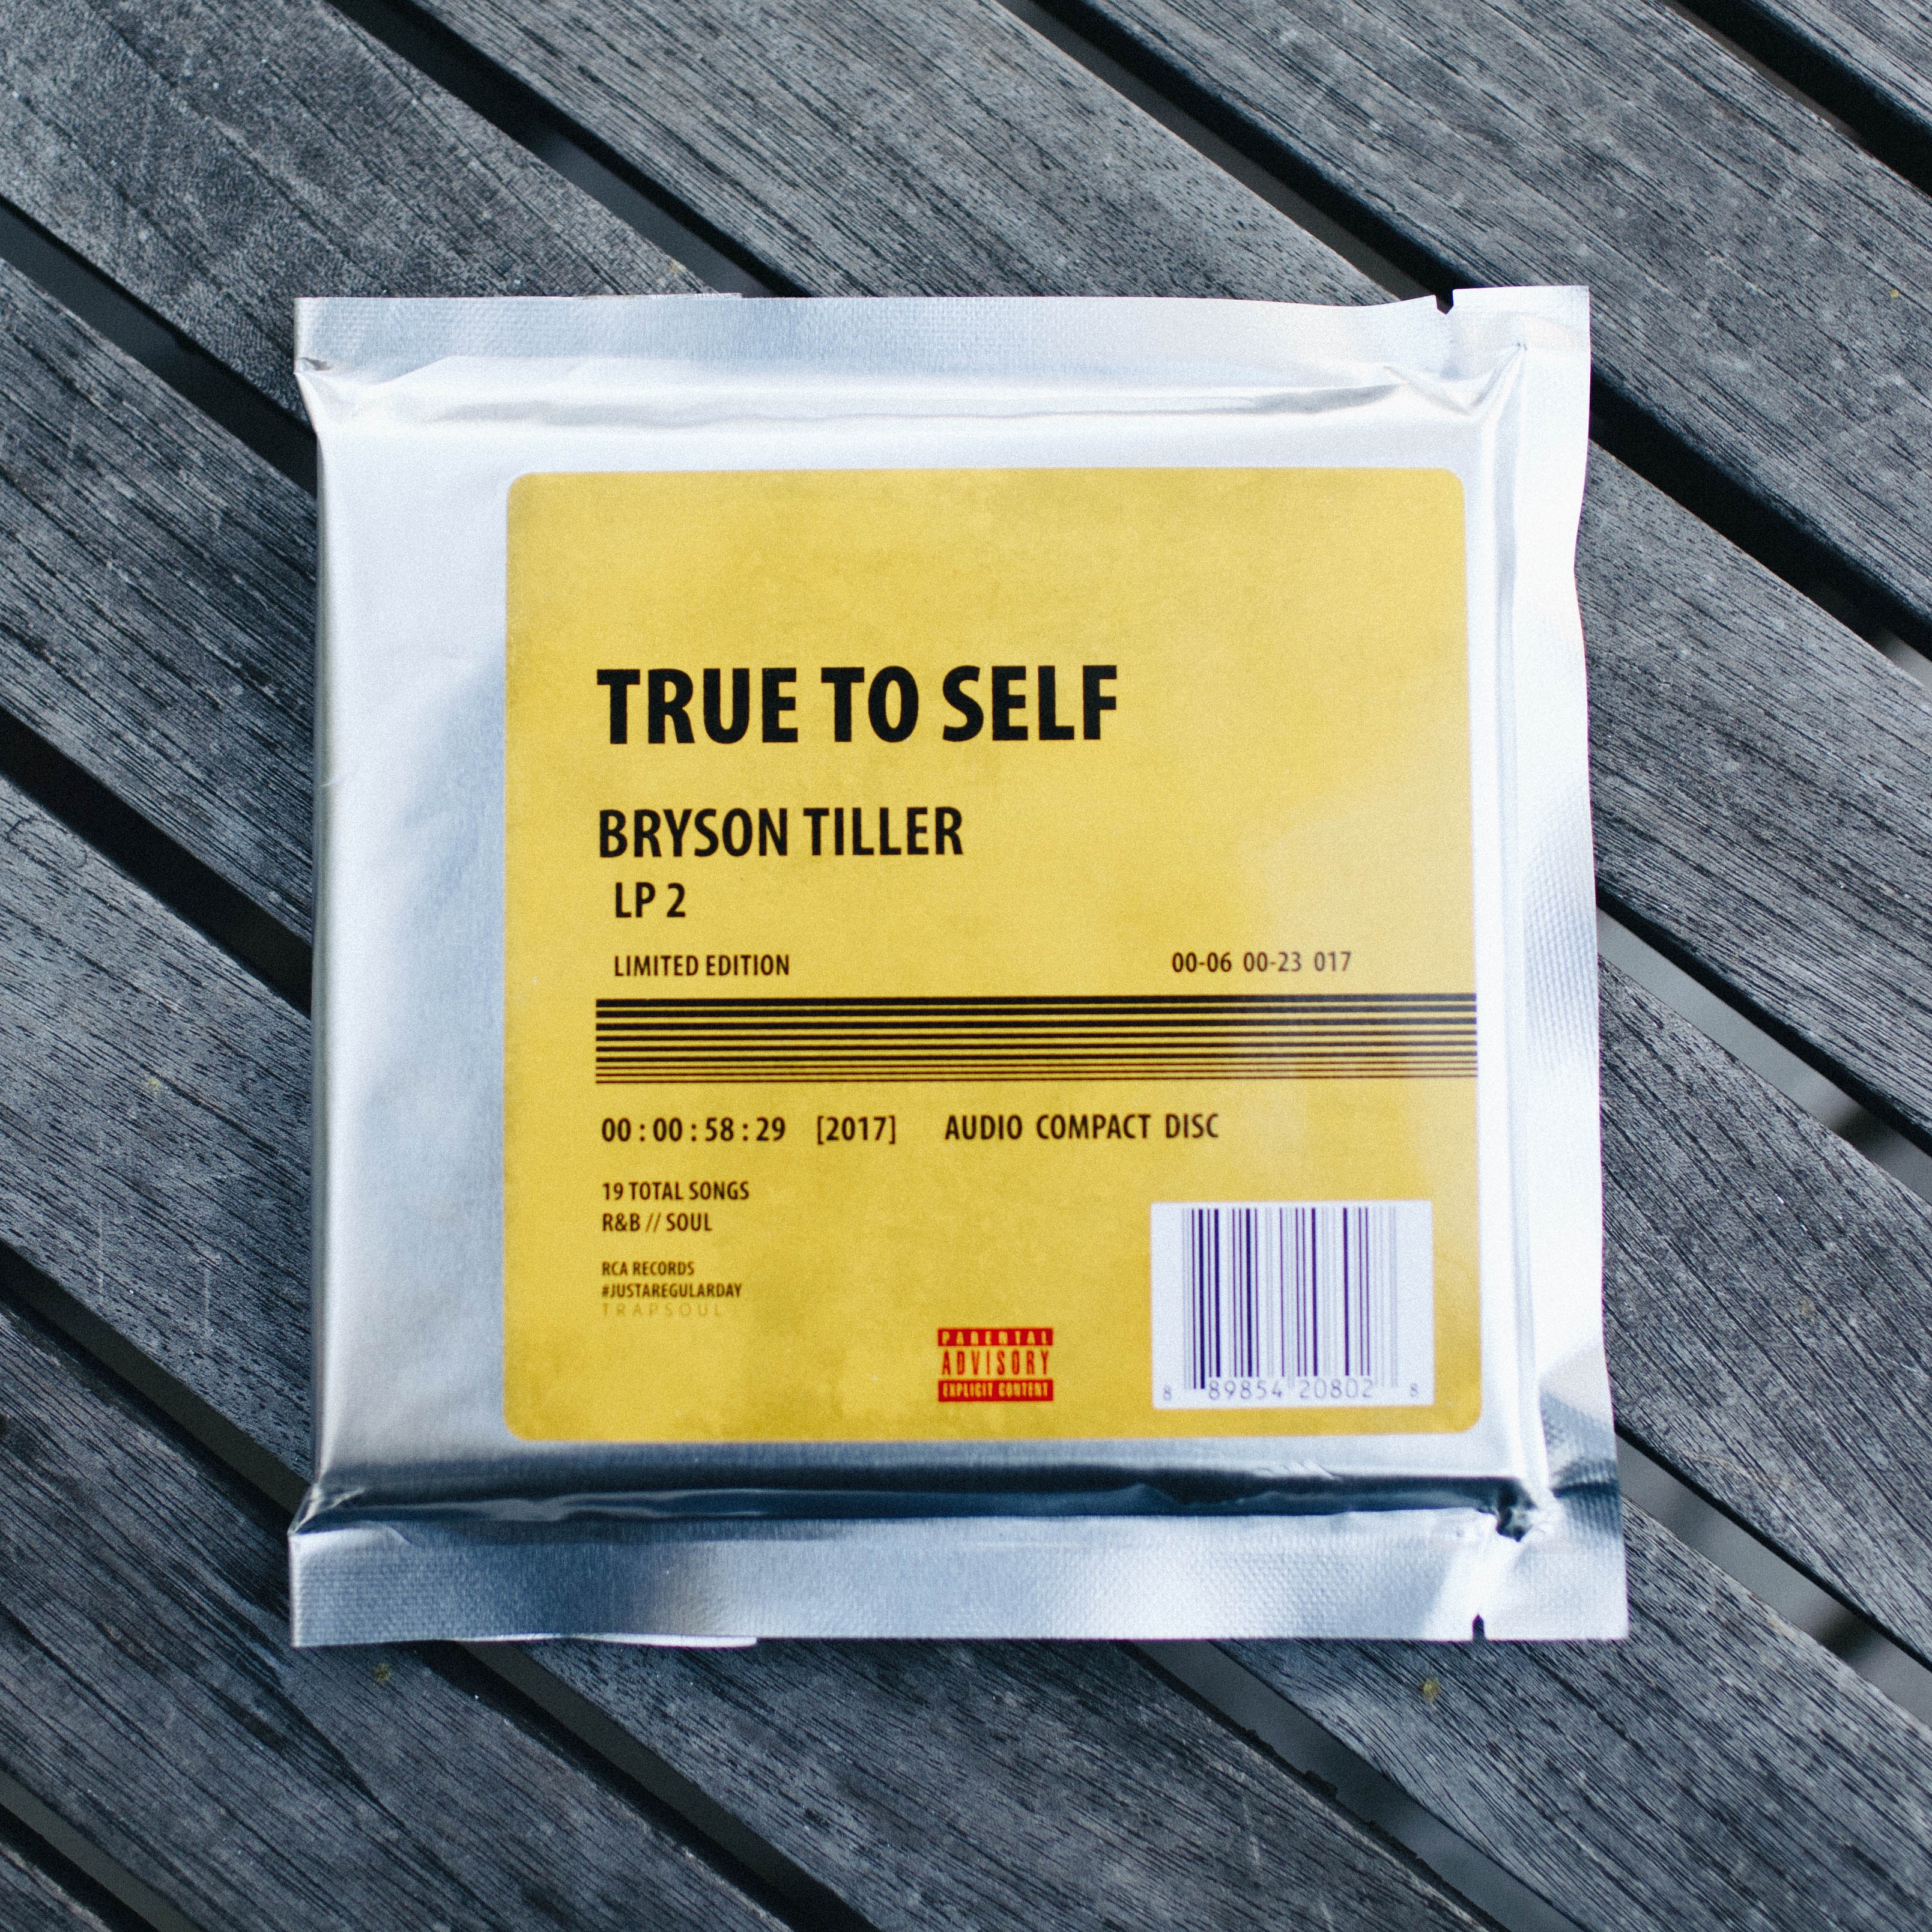 Bryson Tiller S Sophomore Album True To Self Available Physically Now Rca Records